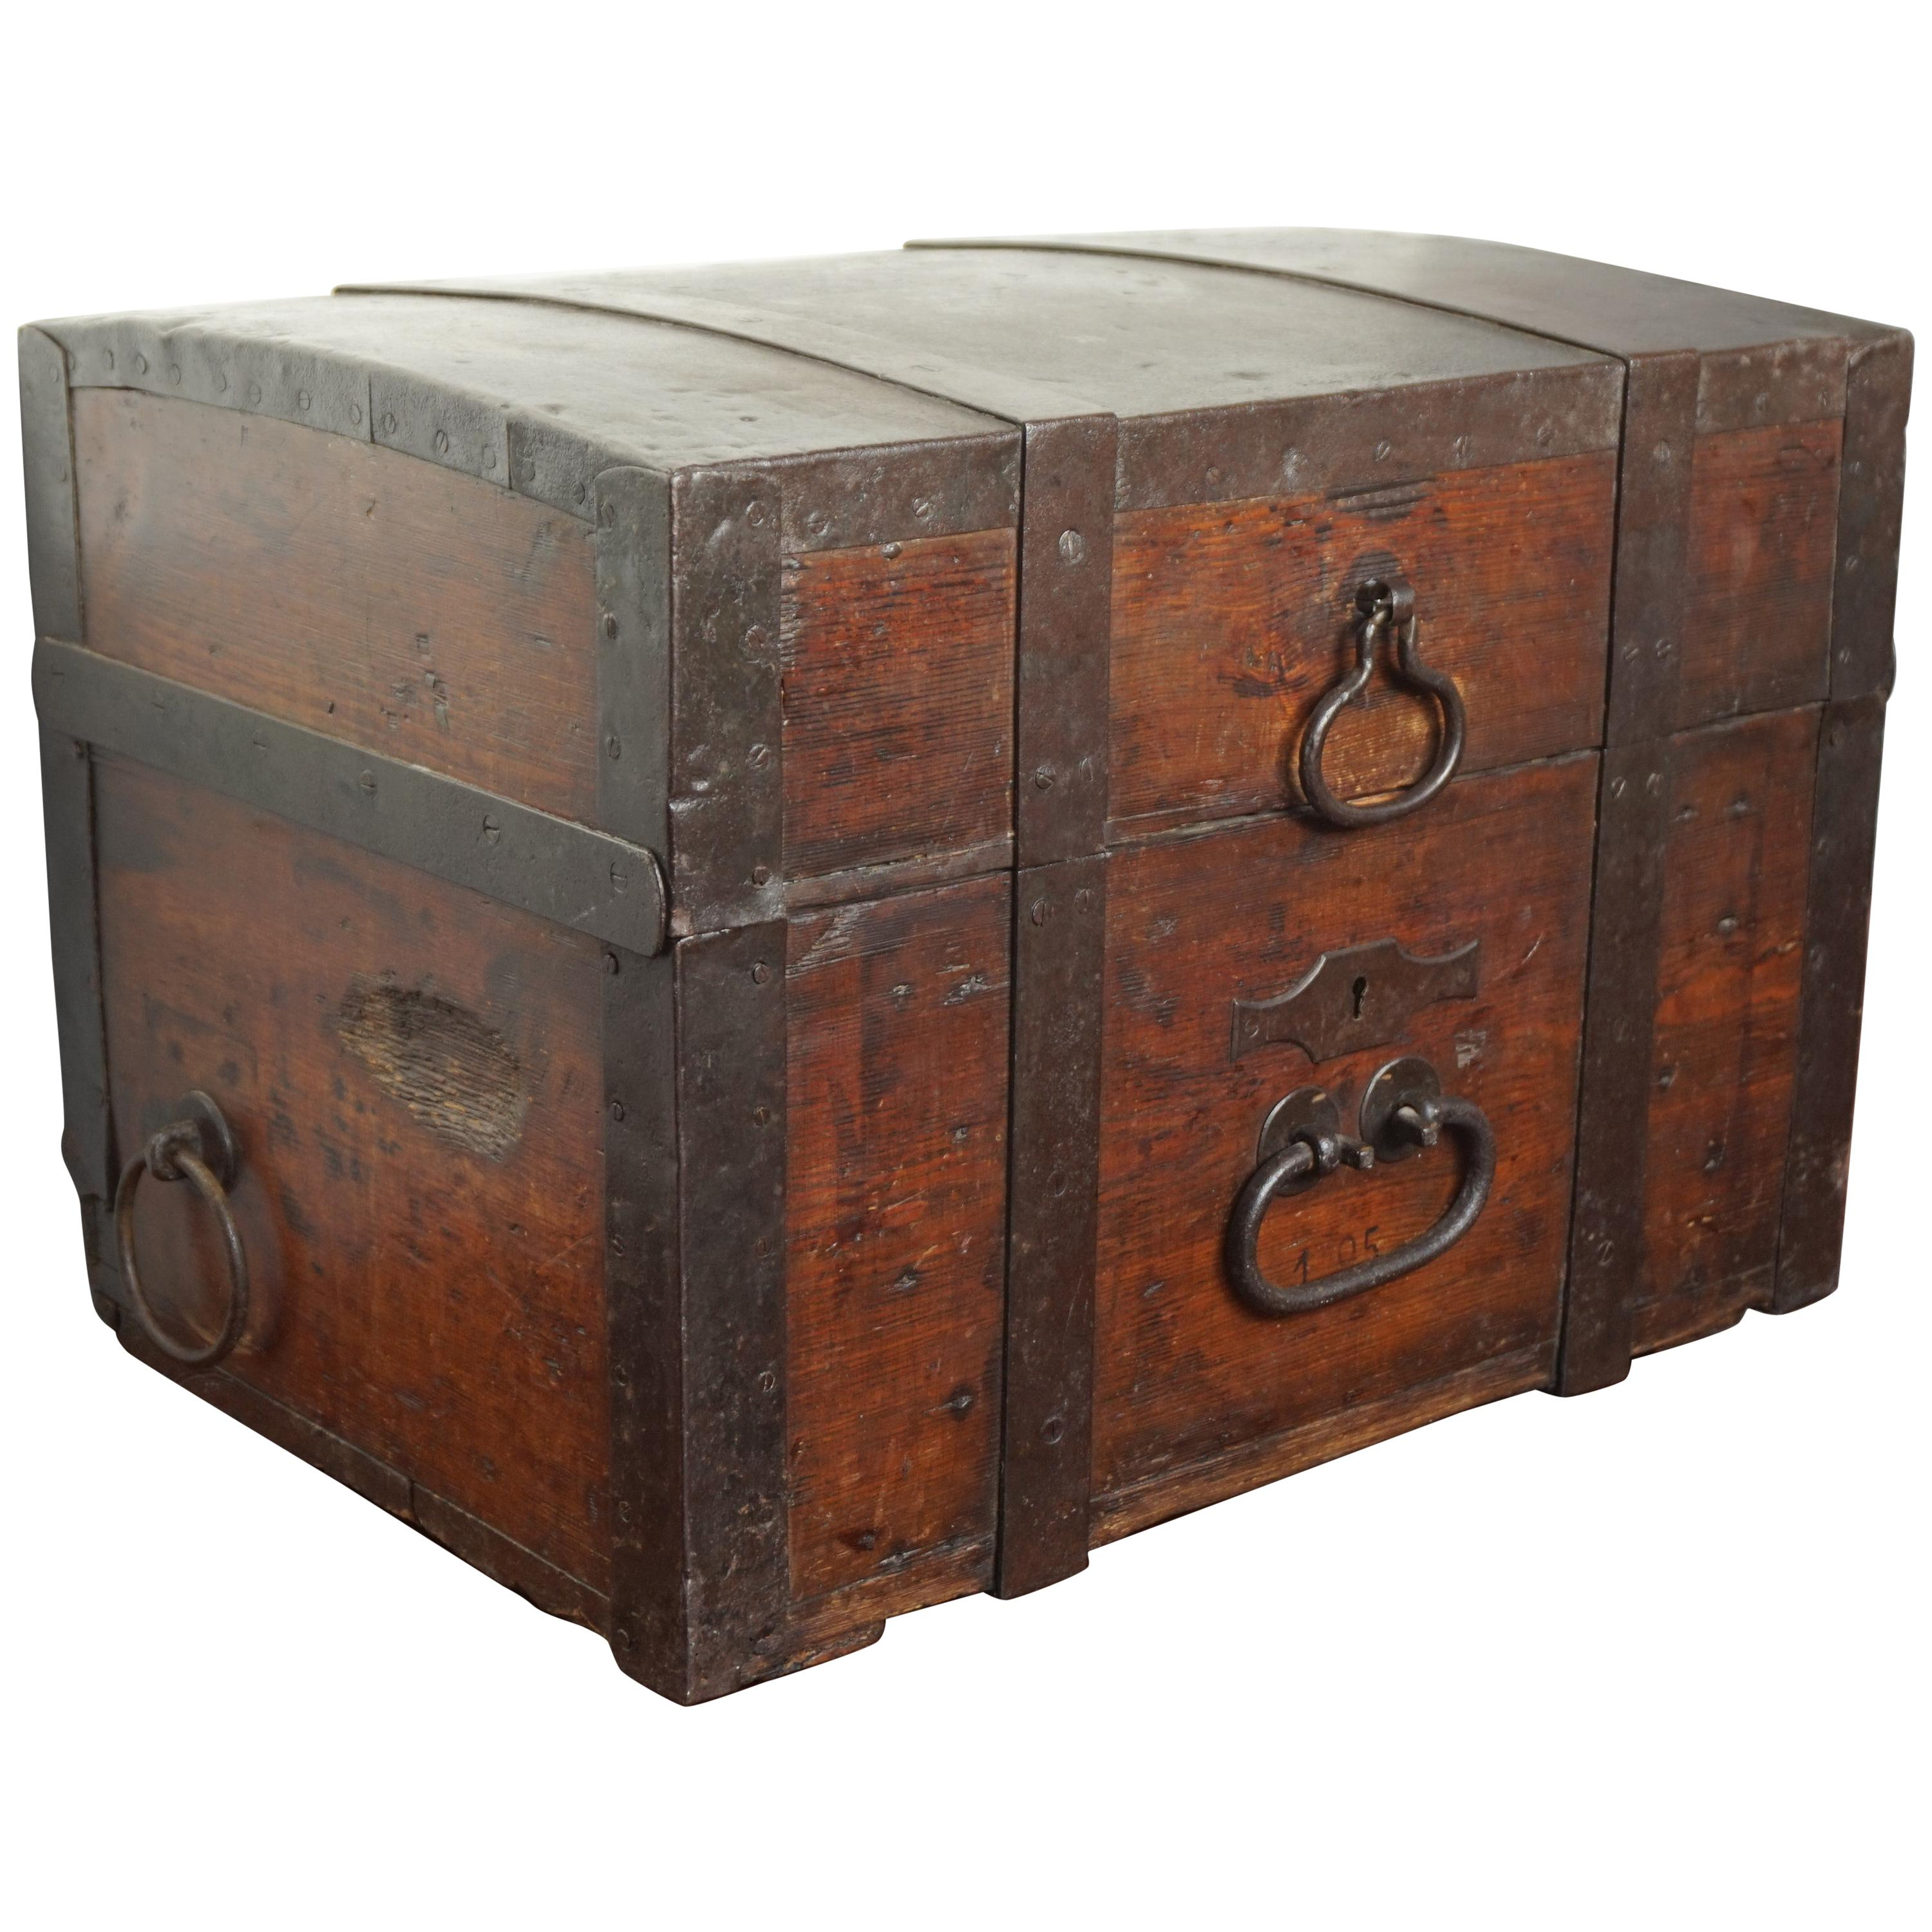 Antique Handcrafted Wooden and Hand Forged Iron Coach / Carriage Strongbox 1800s